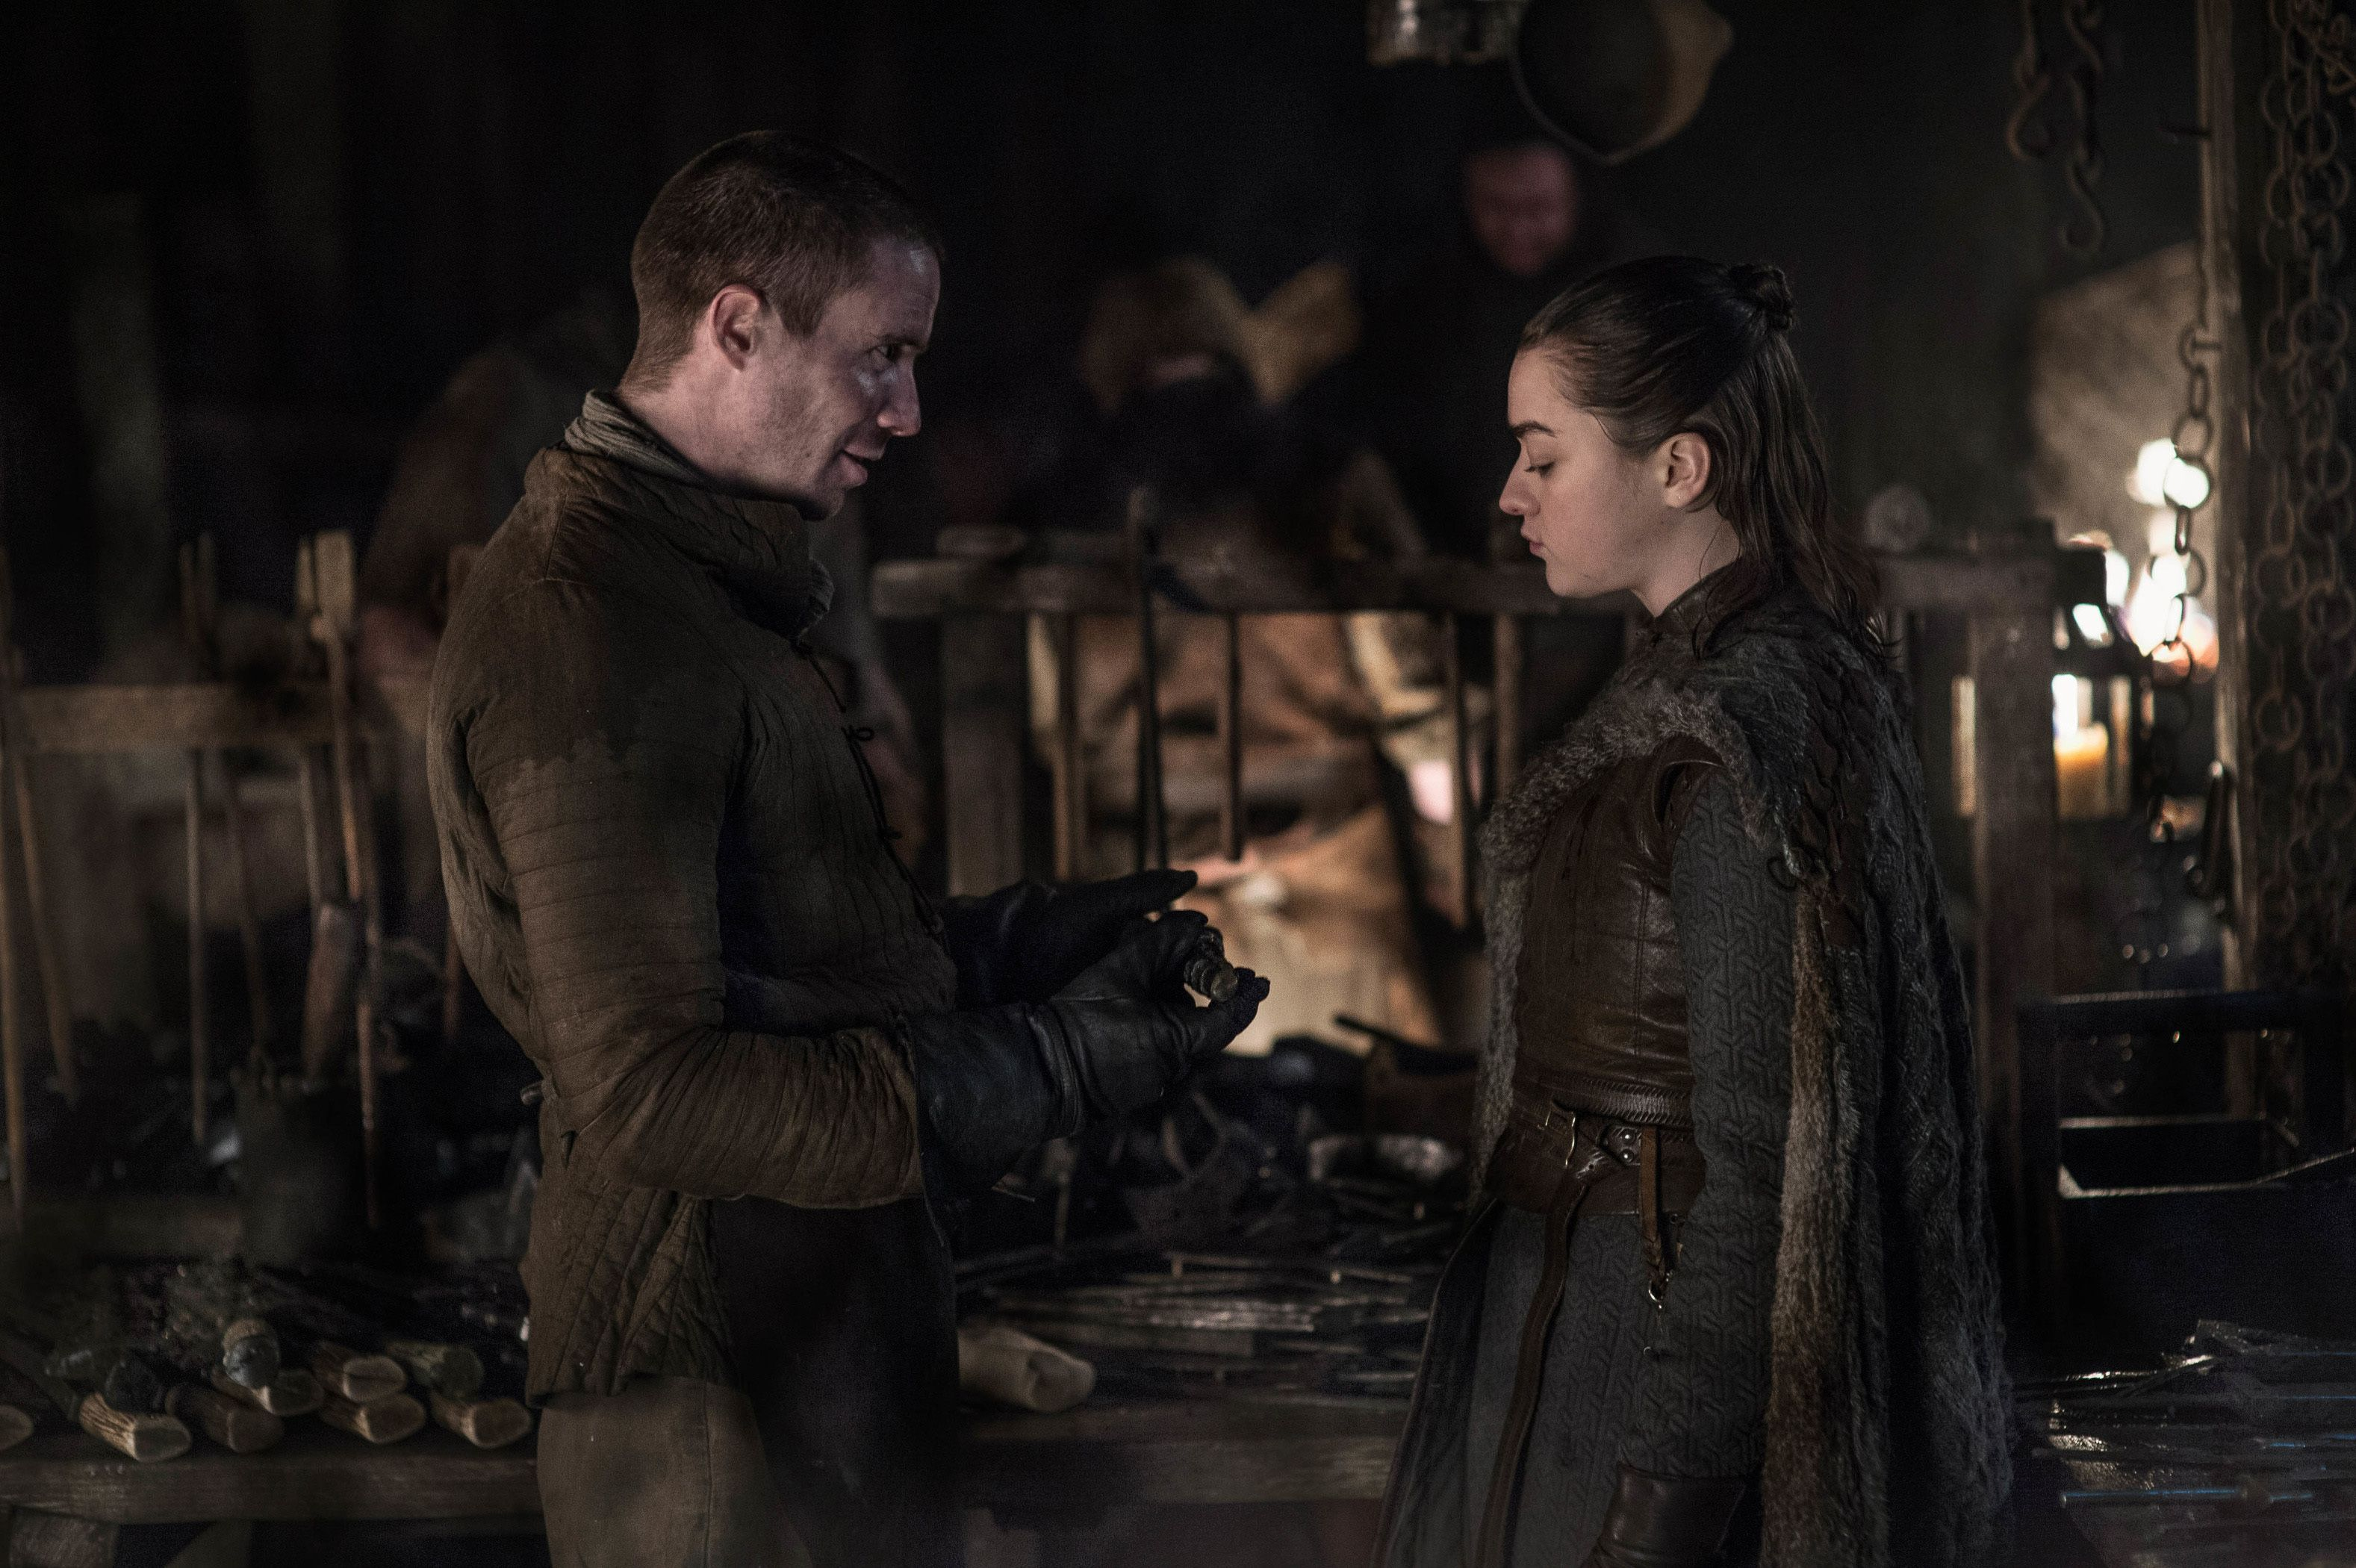 Fans have been asking Dempsie for years whether or not Gendry and Arya would get together.